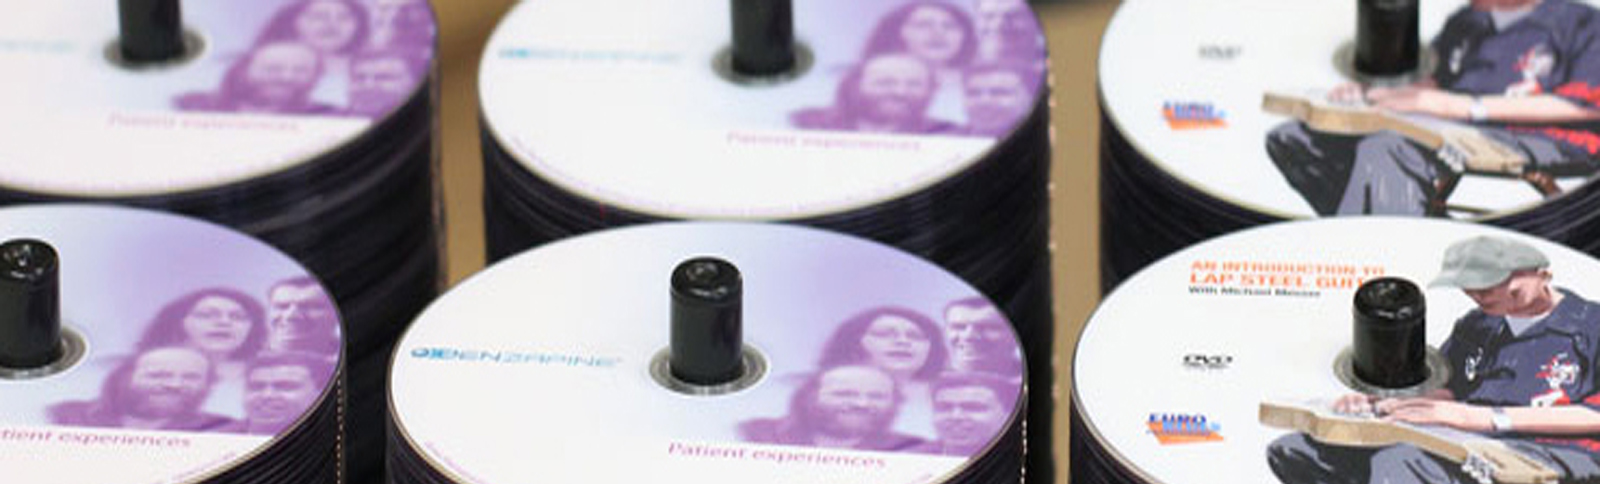 CD Duplication DVD Duplication Oxfordshire UK